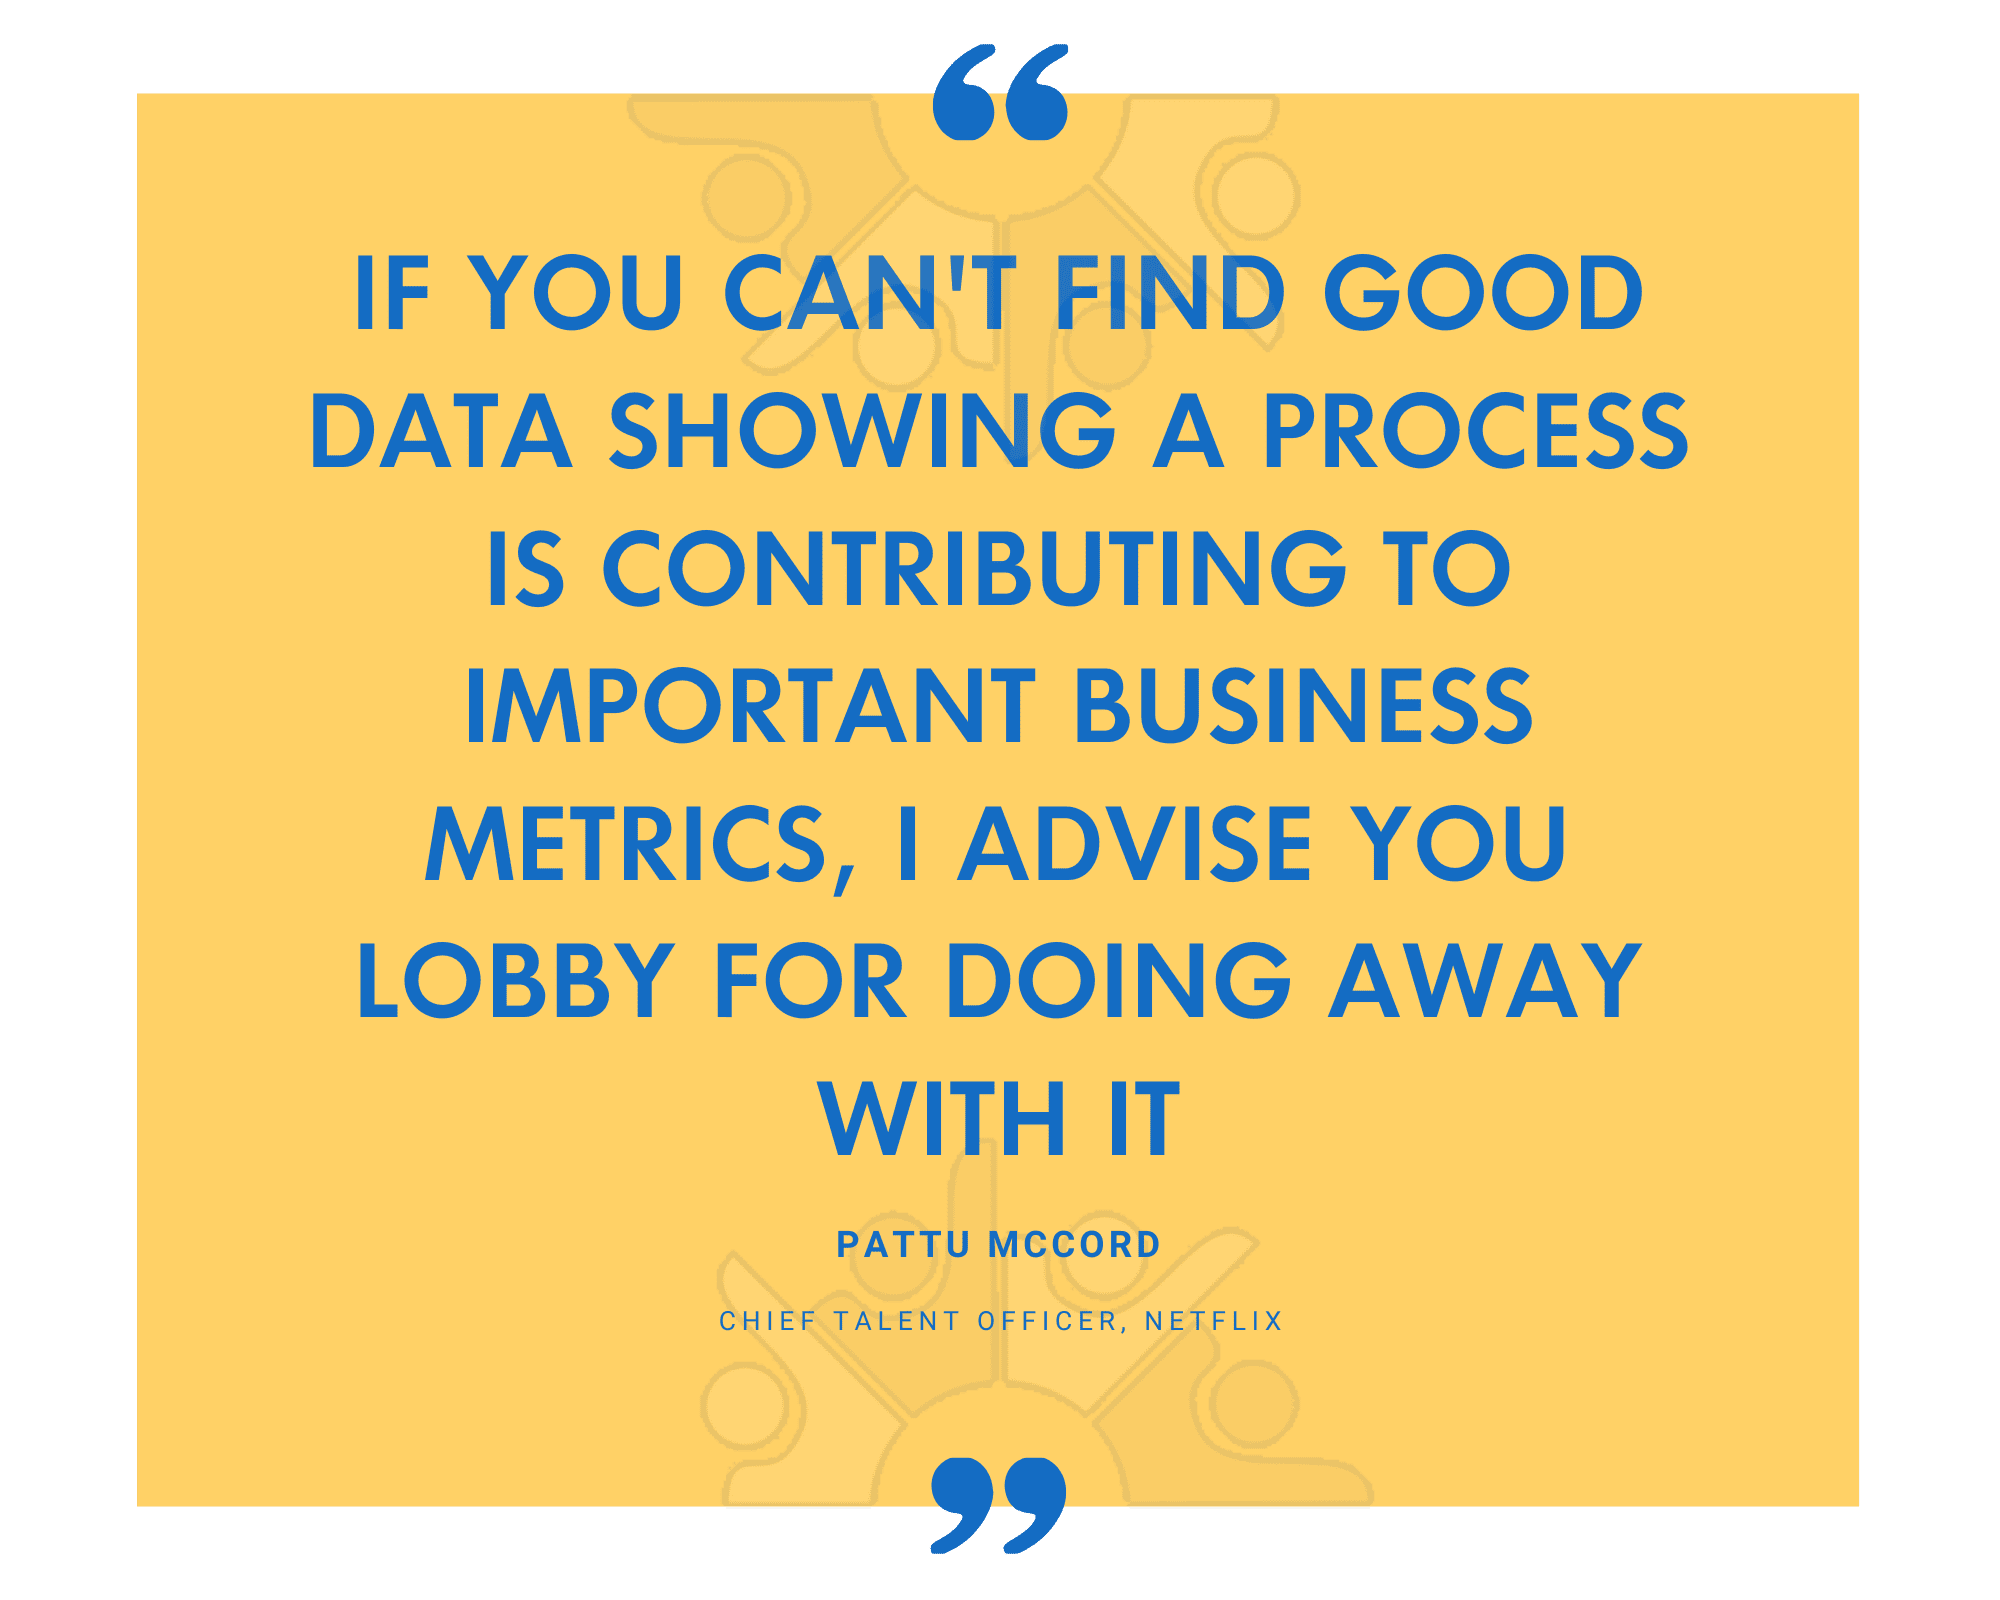 QUOTE if you cant find good data showing a process is contributing to important business metrics